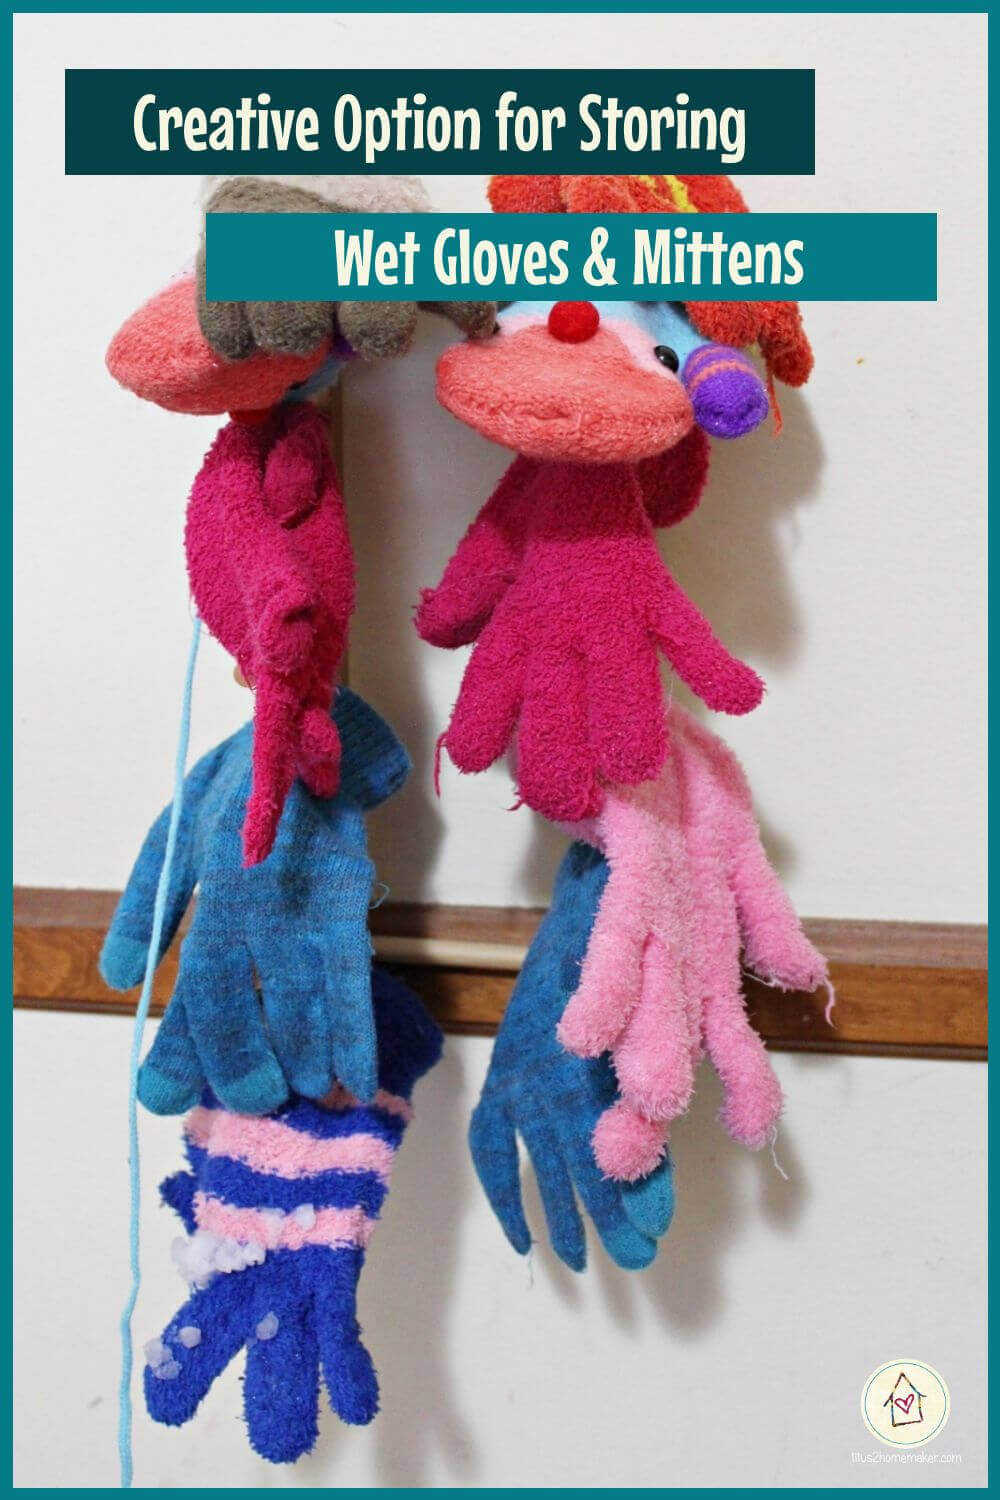 Creative Option for Storing Wet Gloves & Mittens (pinnable image)